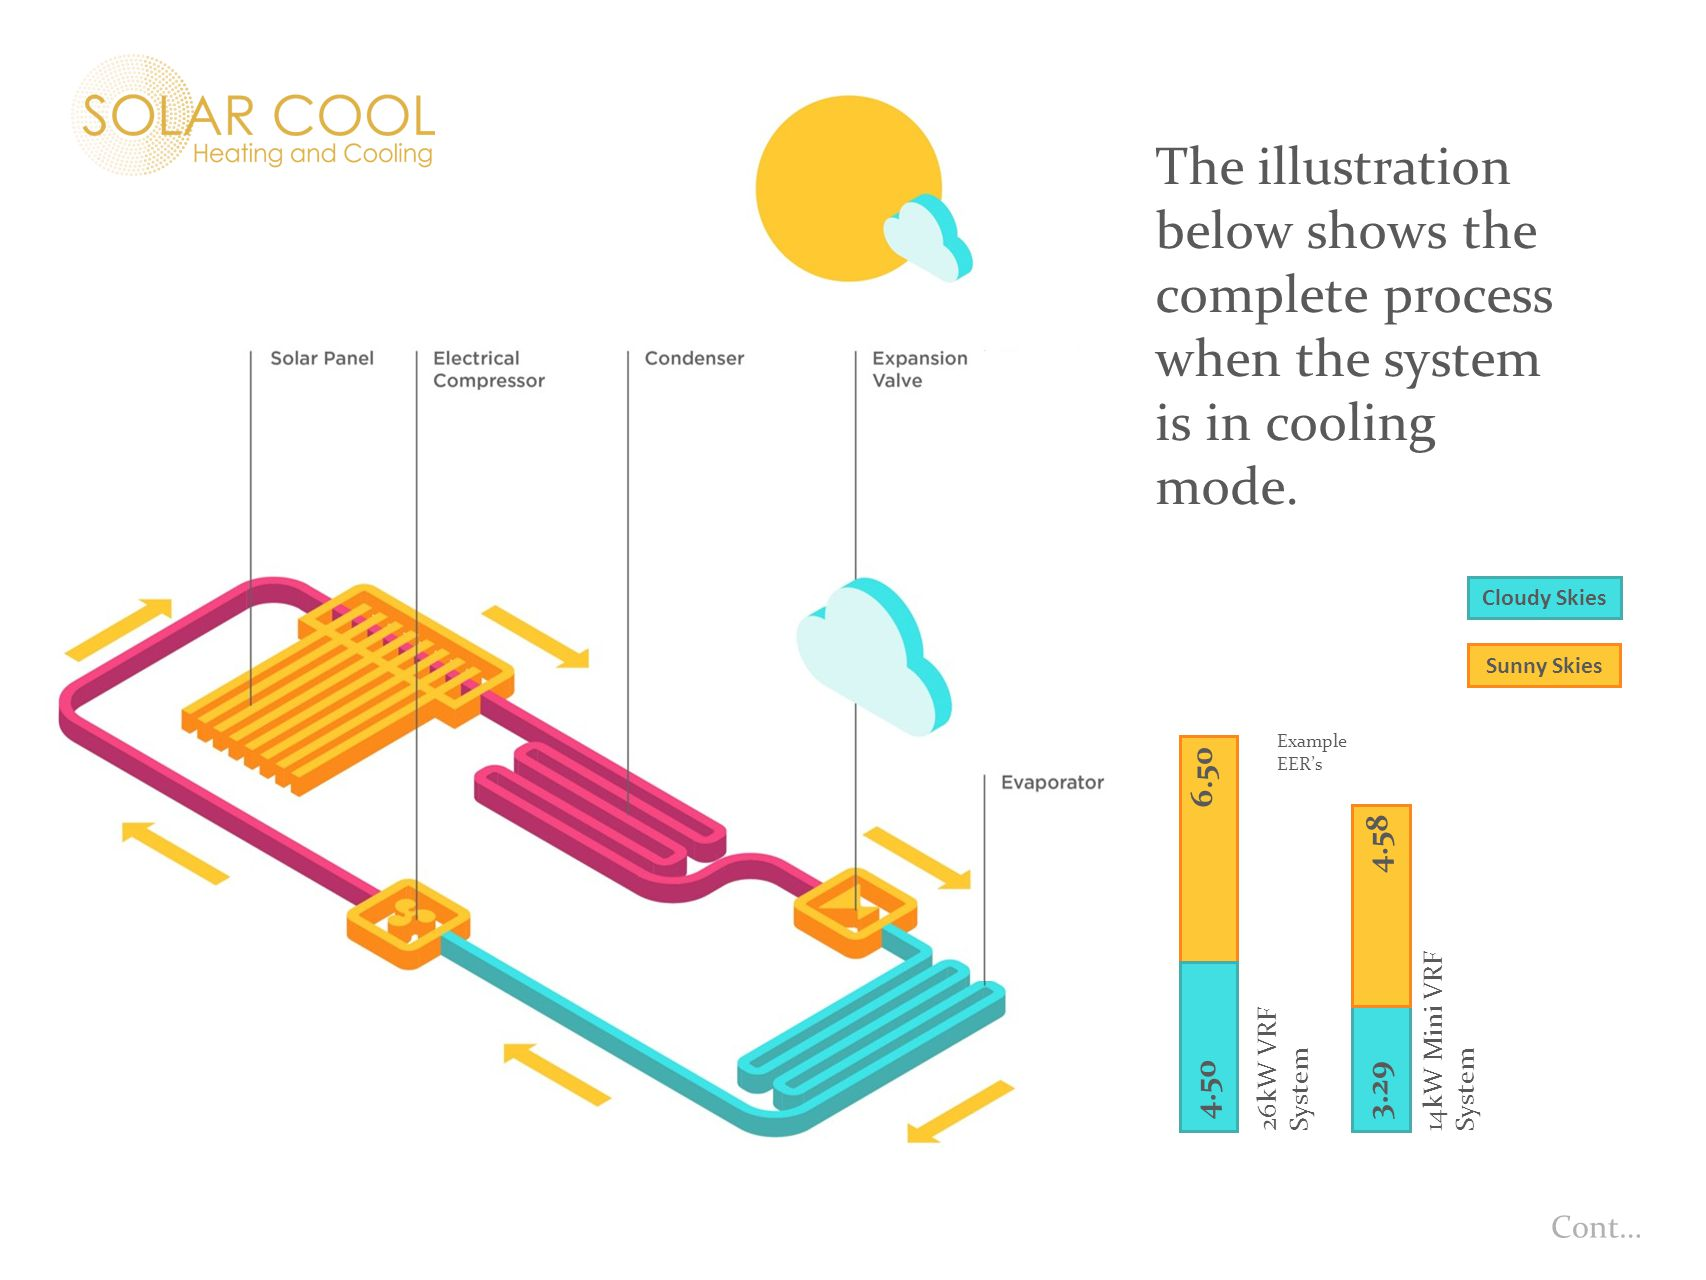 The illustration below shows the complete process when the system is in cooling mode.